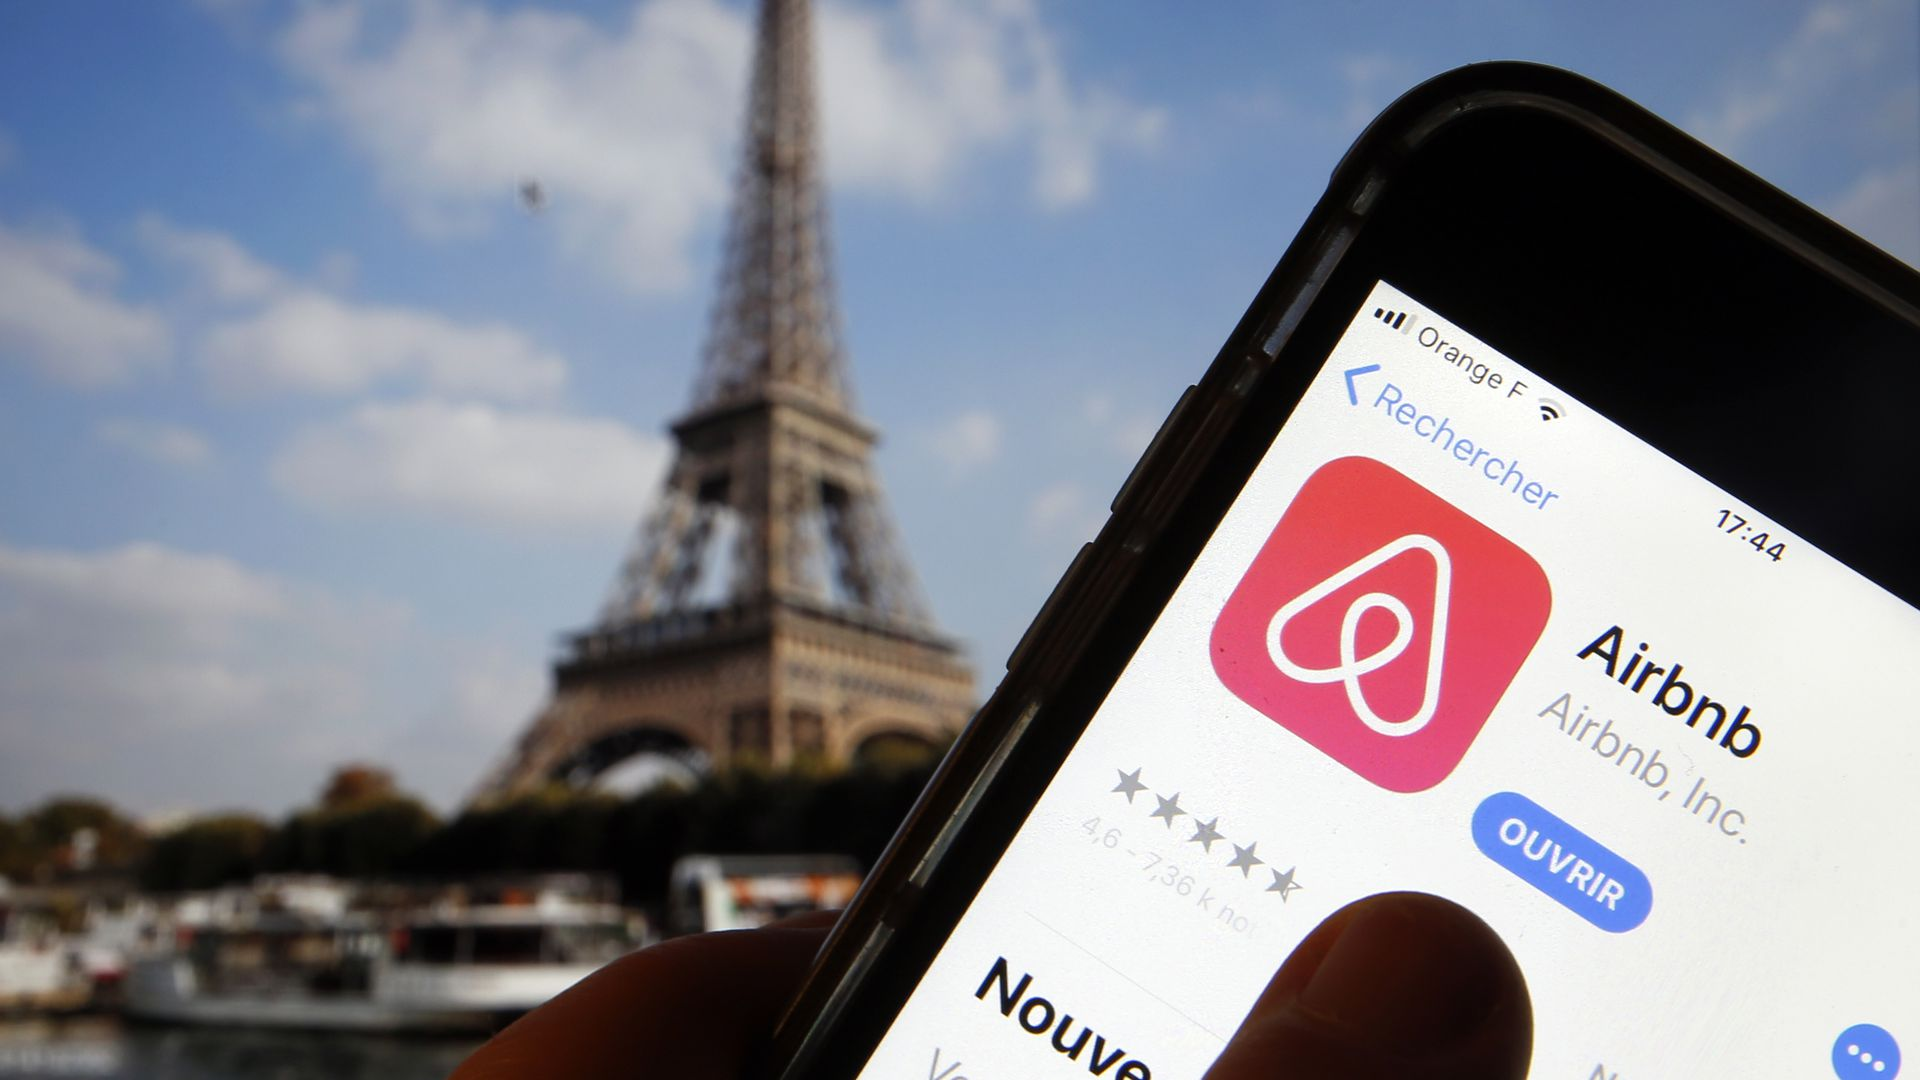 Airbnb app in front of the Eiffel tower